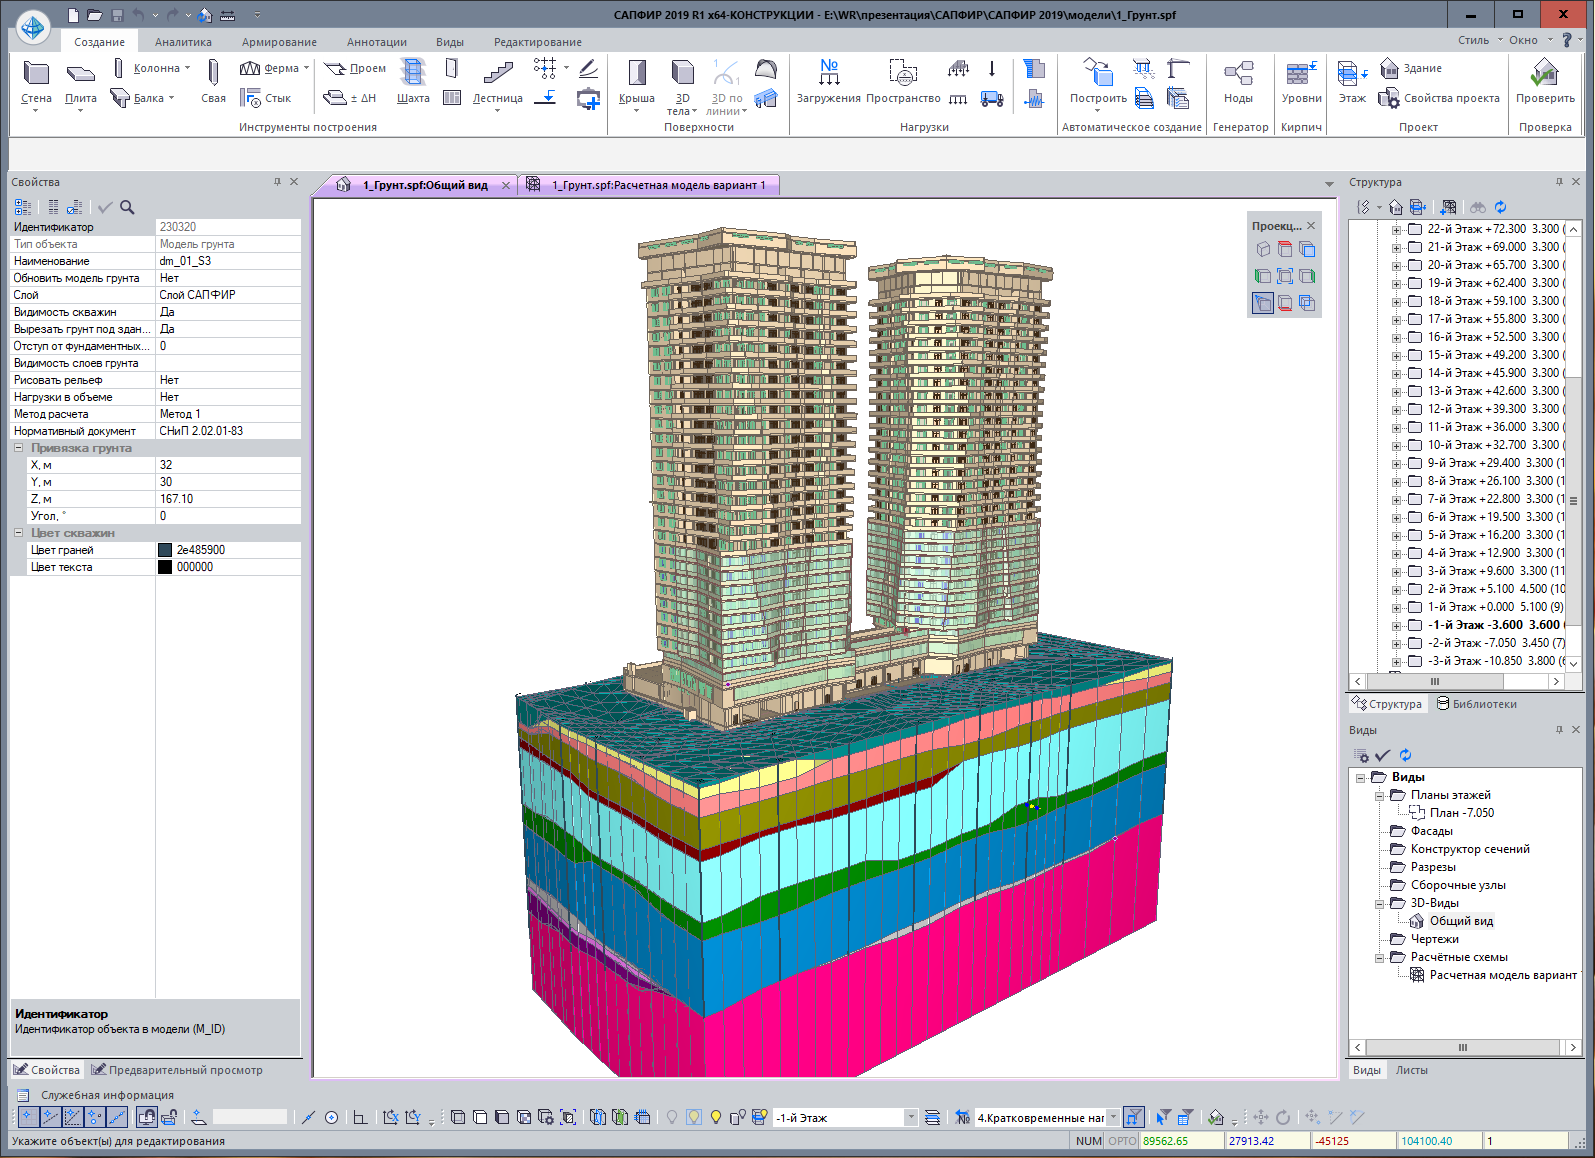 Soil model attached to 3D building structure in SAPFIR